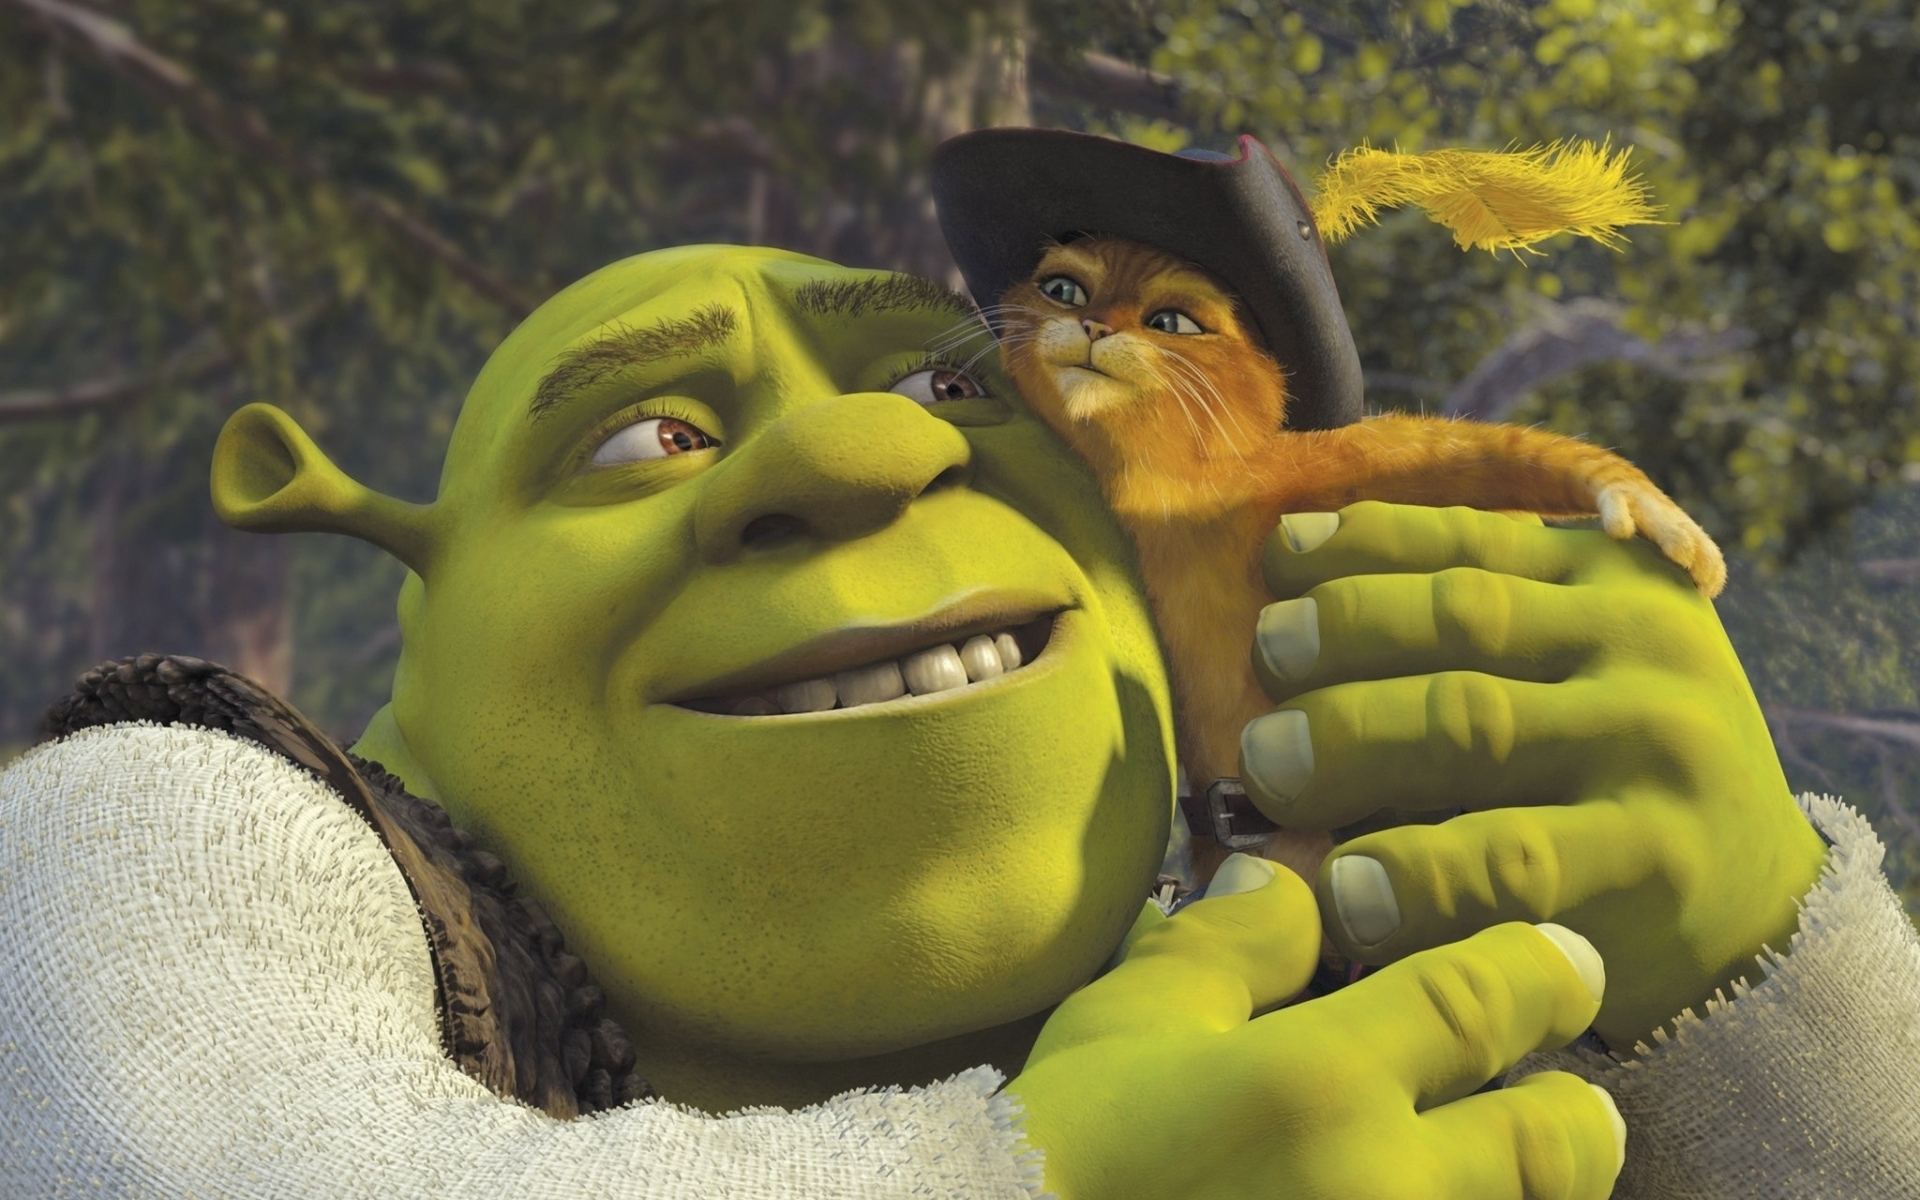 Shrek Movie Desktop Wallpaper Shrek 2 3087031 Hd Wallpaper Backgrounds Download